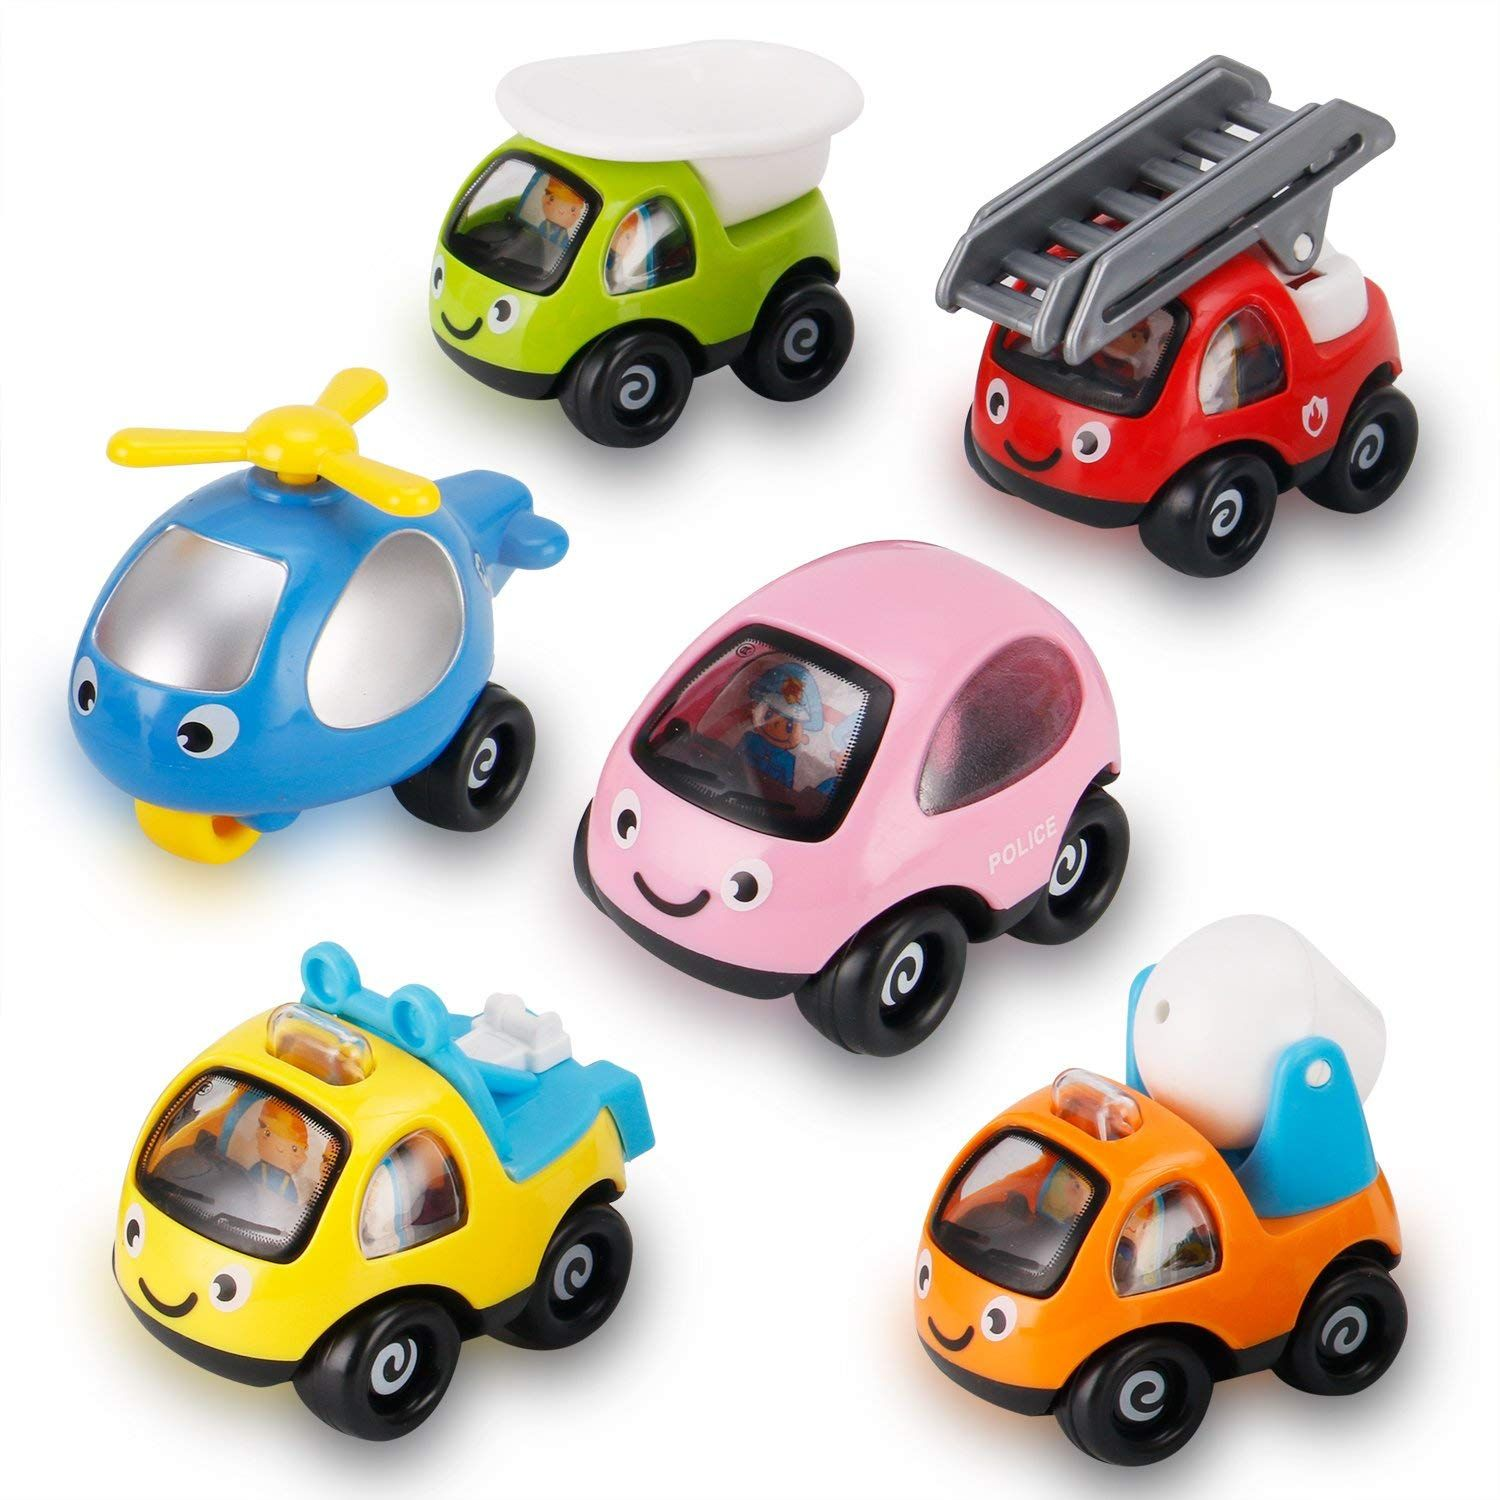 Assorted Colorful Cartoon Cars And Trucks Fun Play Toy Vehicles